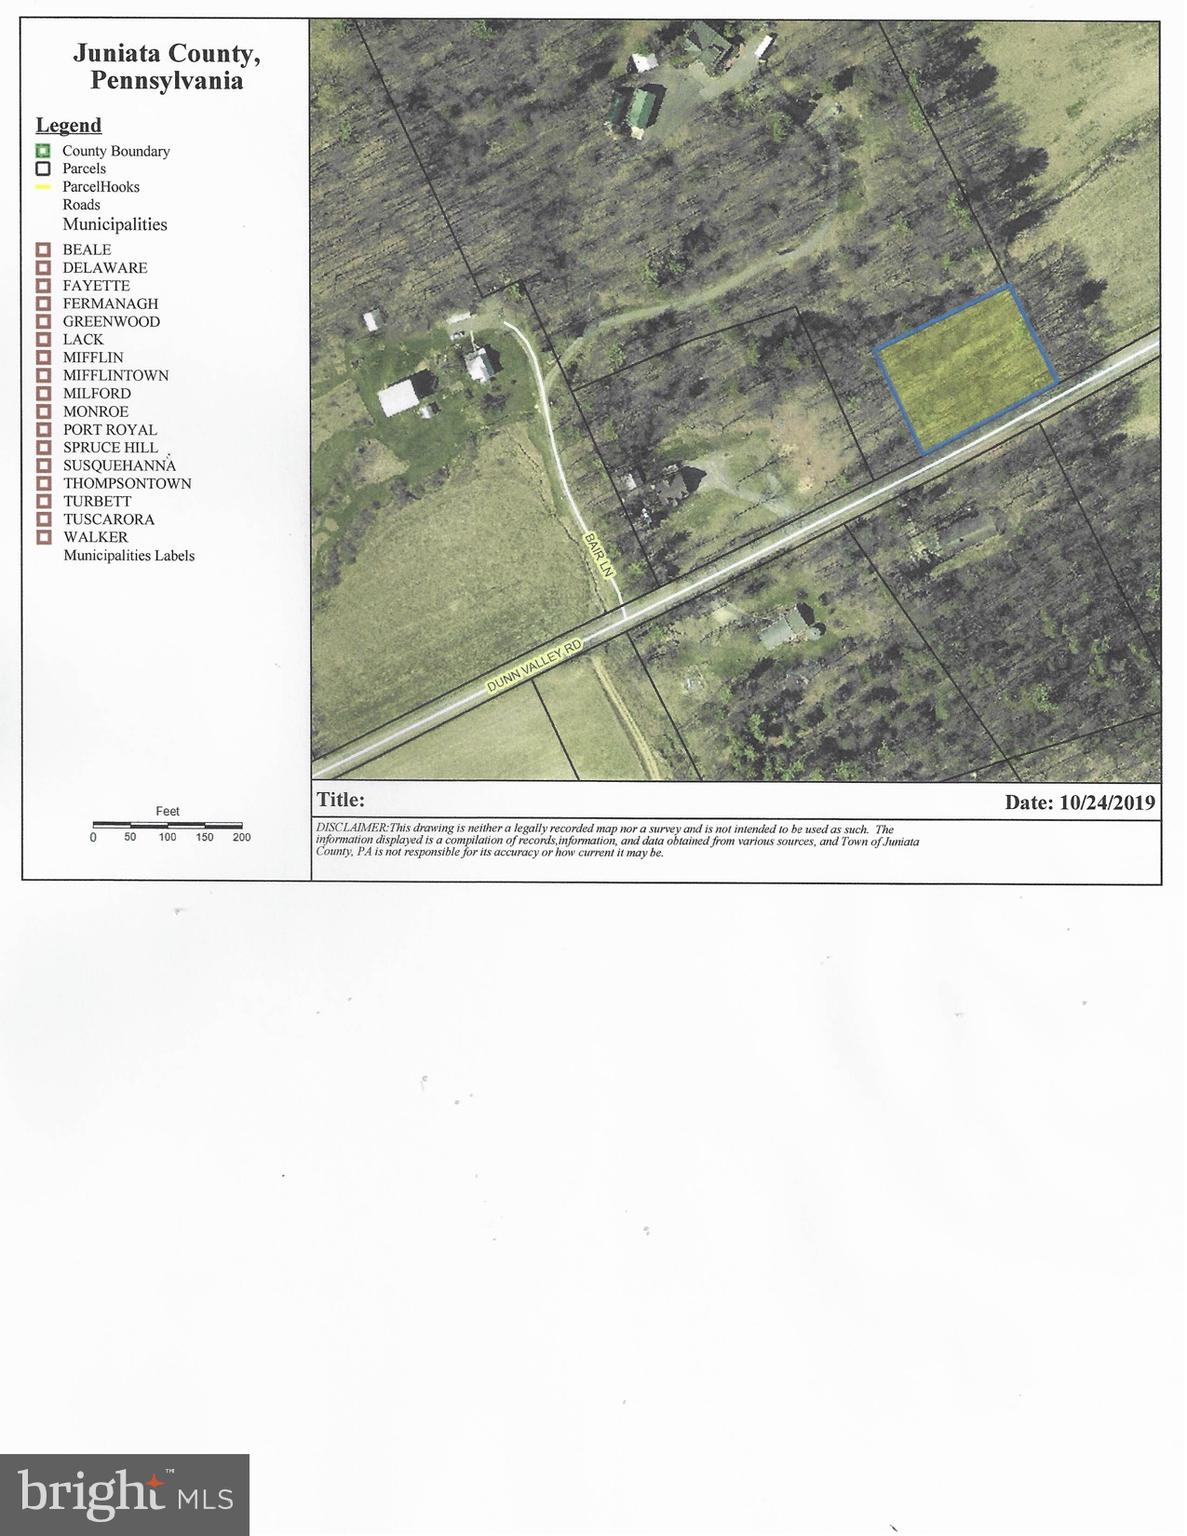 000 DUNN VALLEY ROAD, MC ALISTERVILLE, PA 17049